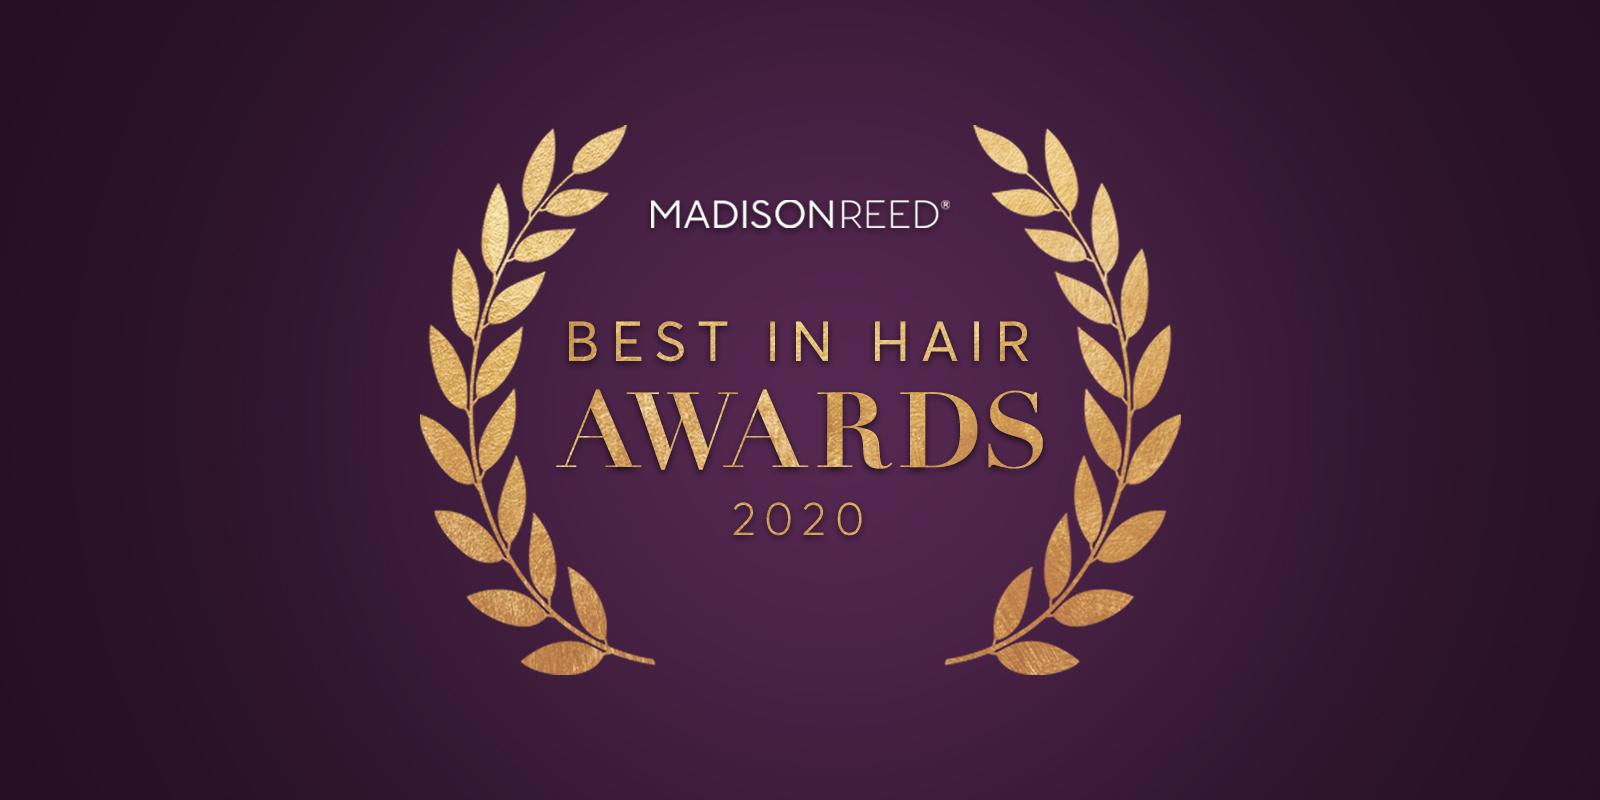 Best in Hair Awards 2020